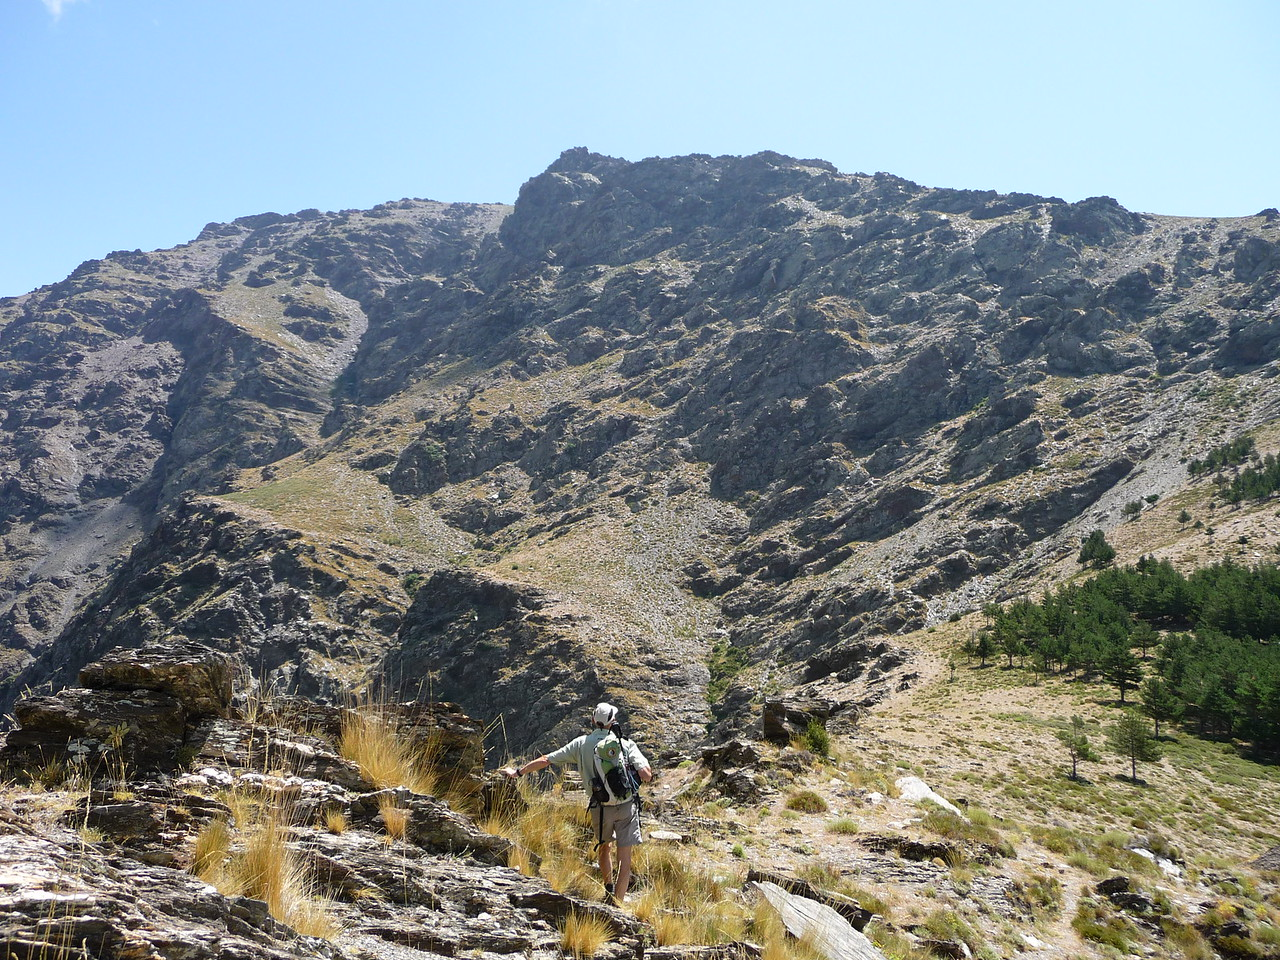 Assessing the ascent to Pena de los Papos 2533 metres